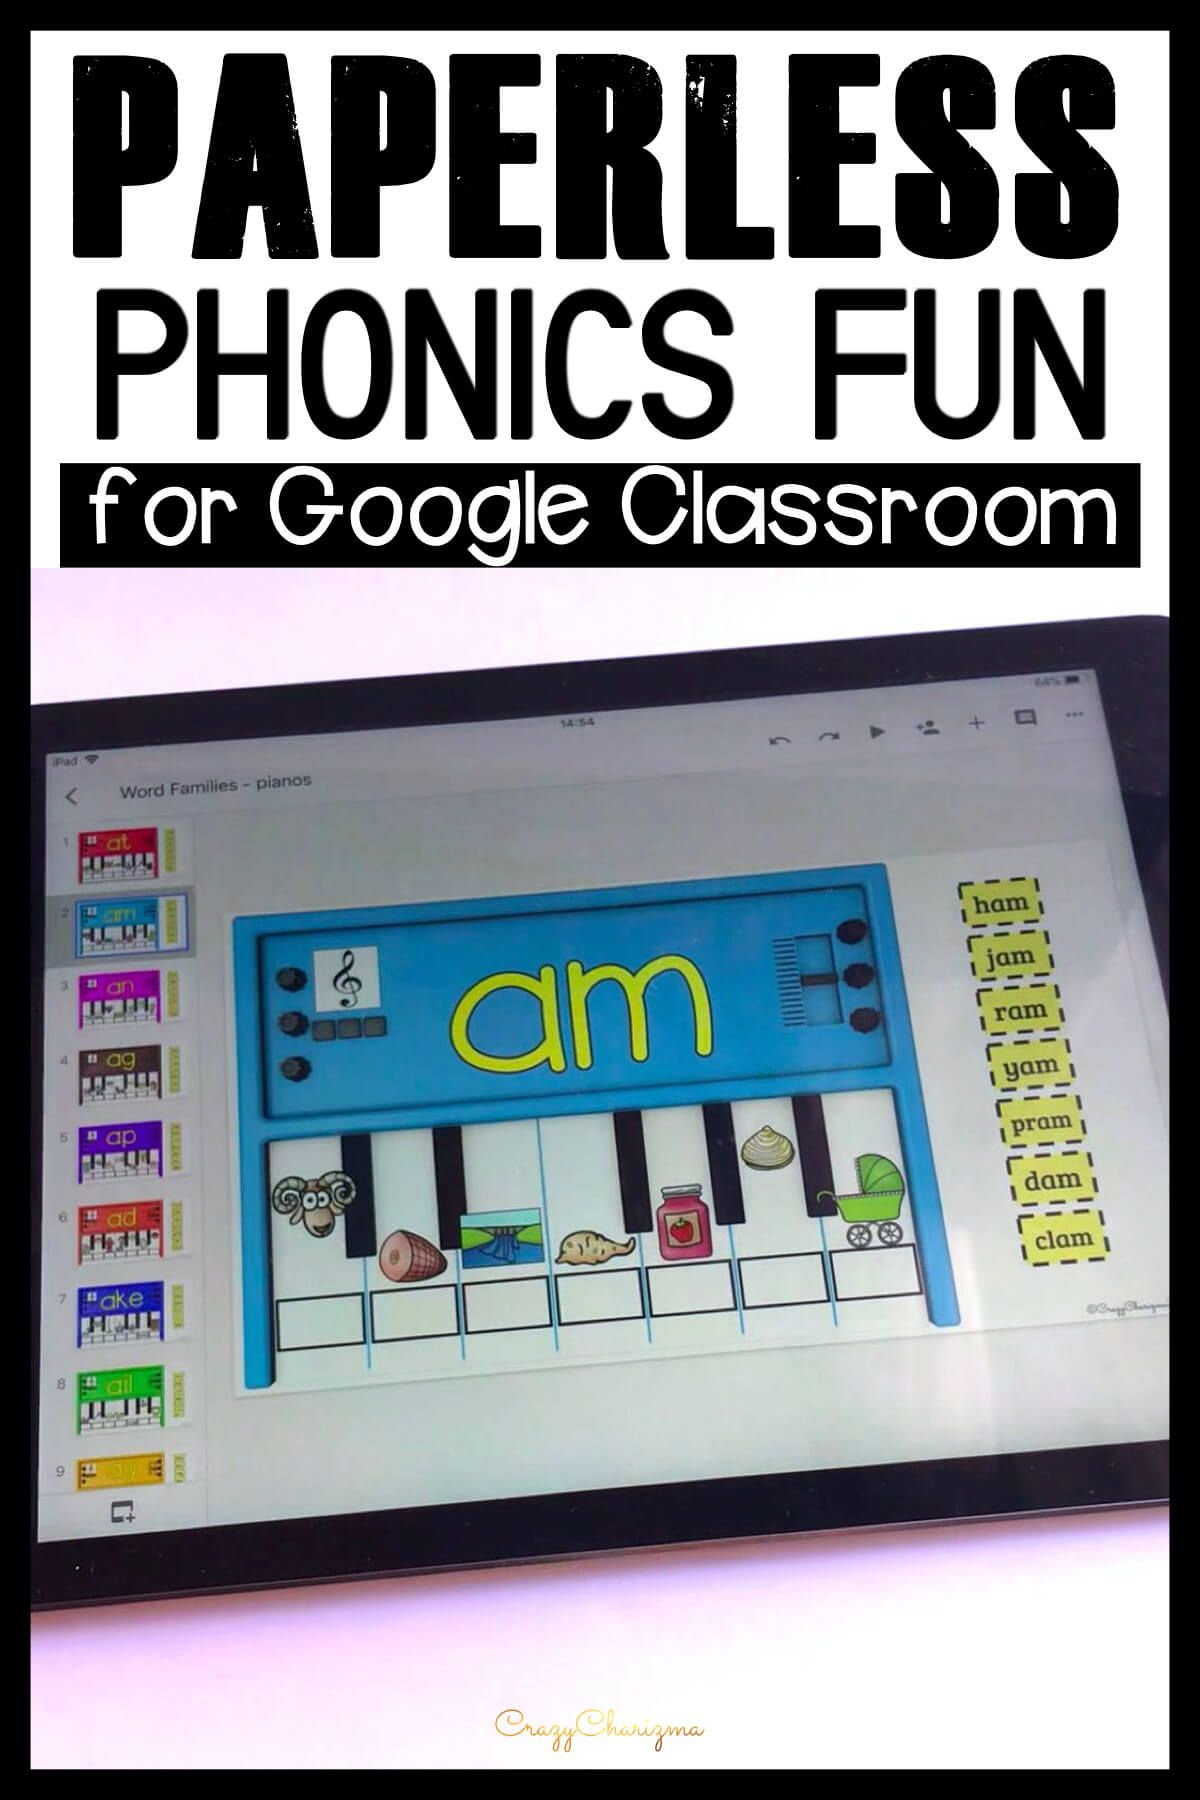 Do you need to practice phonics on iPads, Chromebooks or smartboards? Use these activities for Google Classroom™. The games are perfect for 1:1 work, during your literacy block, daily 5, guided reading, spelling, RTI, or during literacy centers.